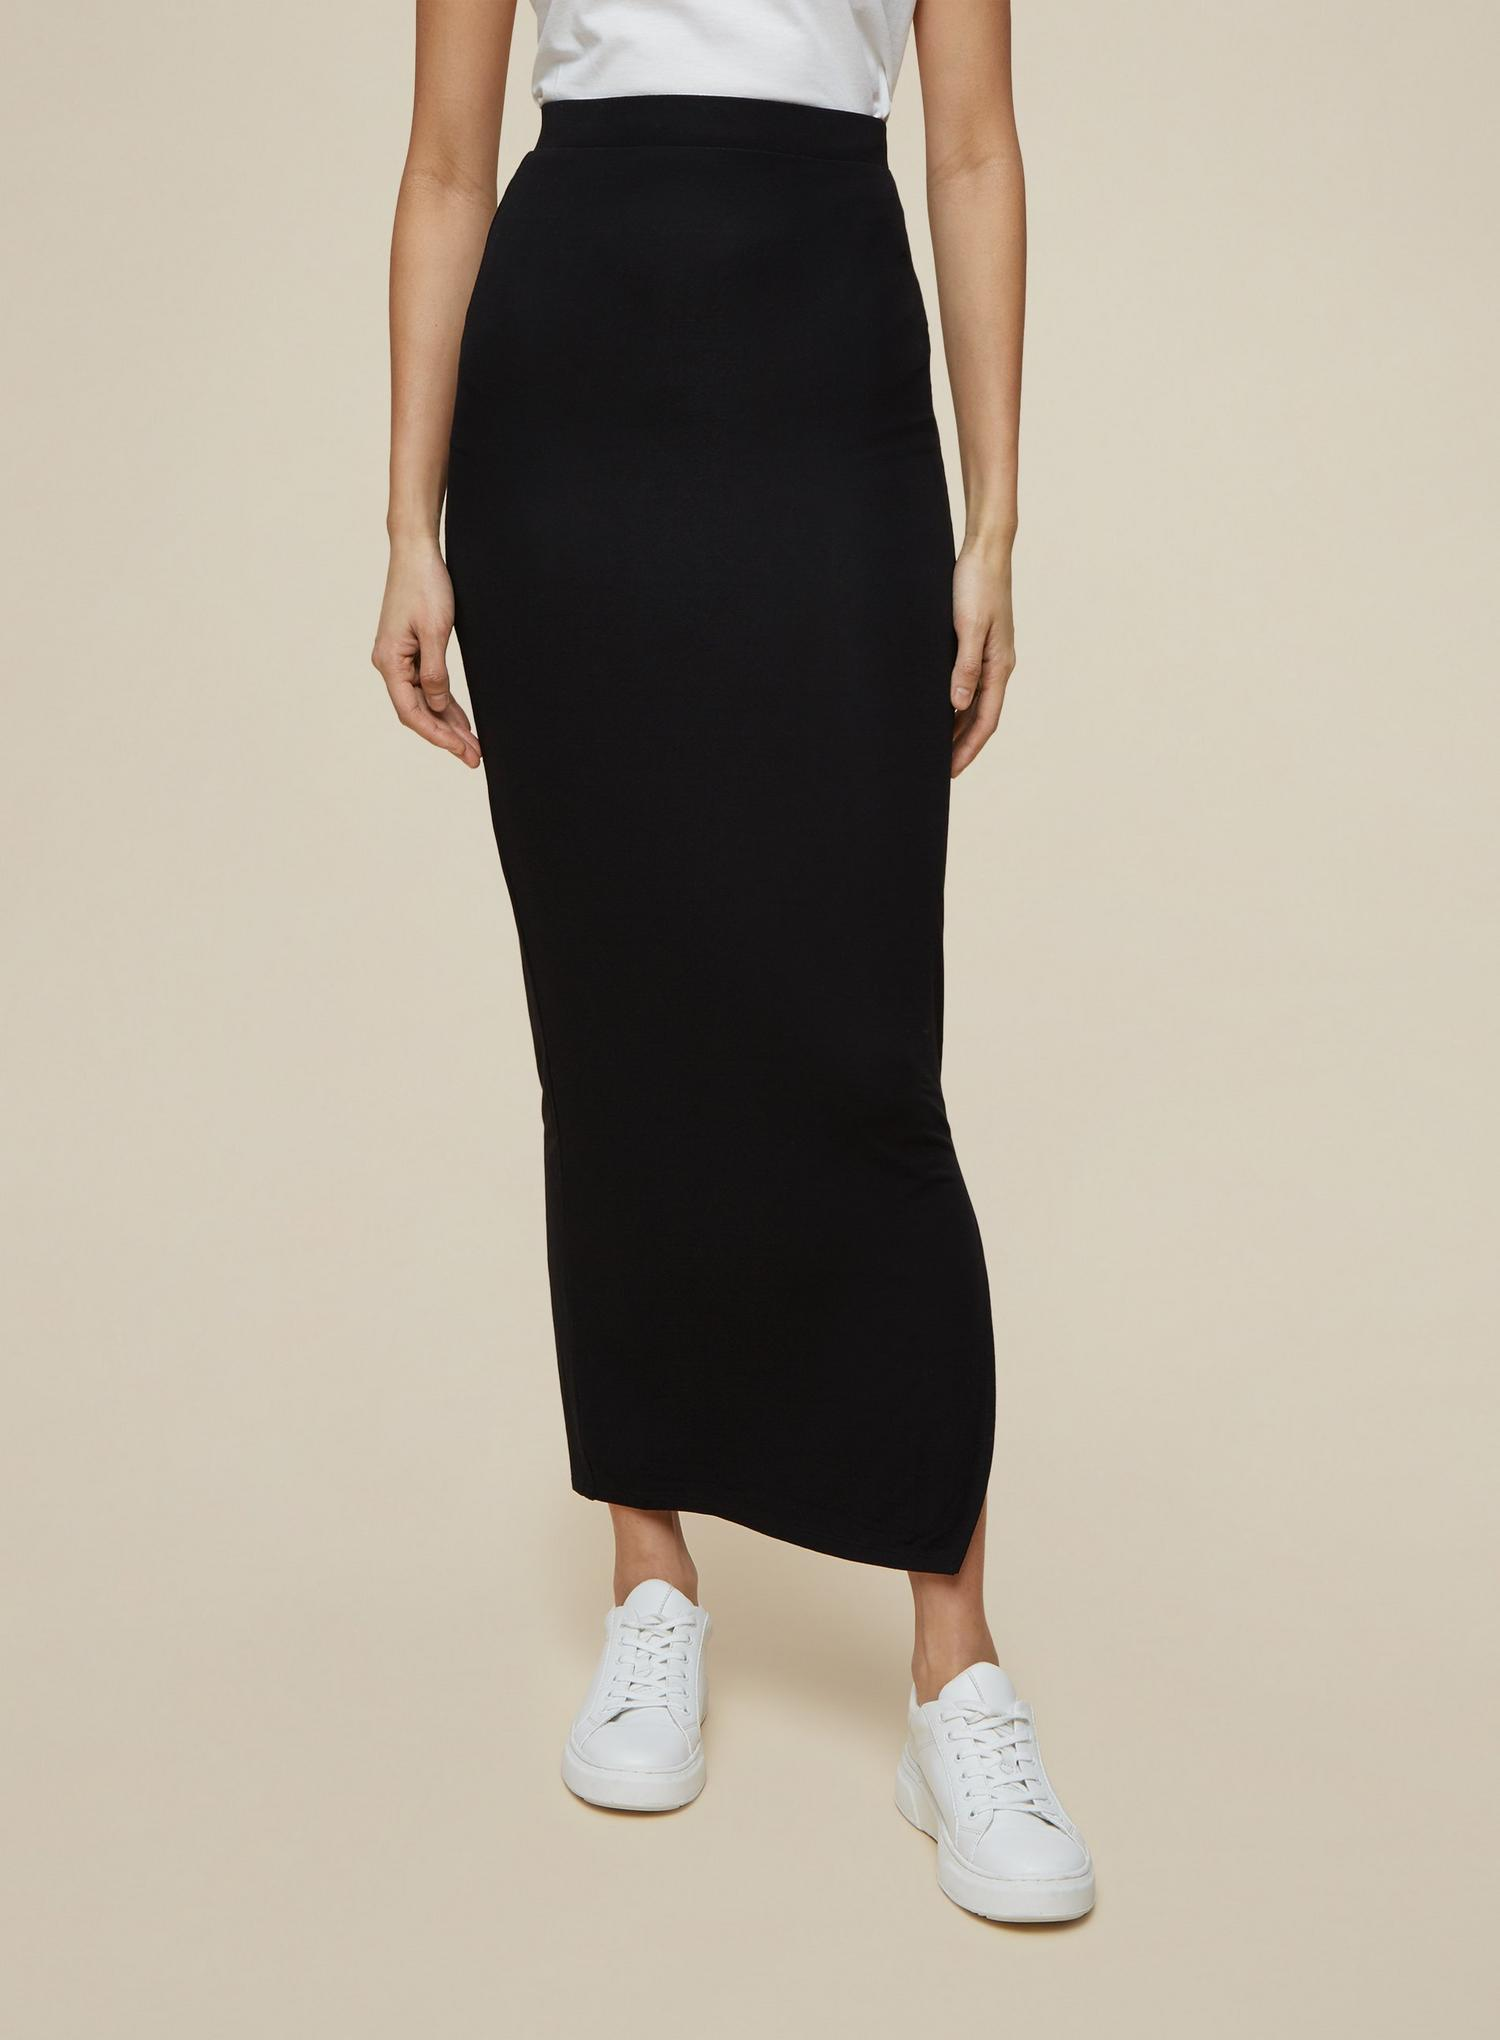 105 Tall Black Maxi Skirt image number 1